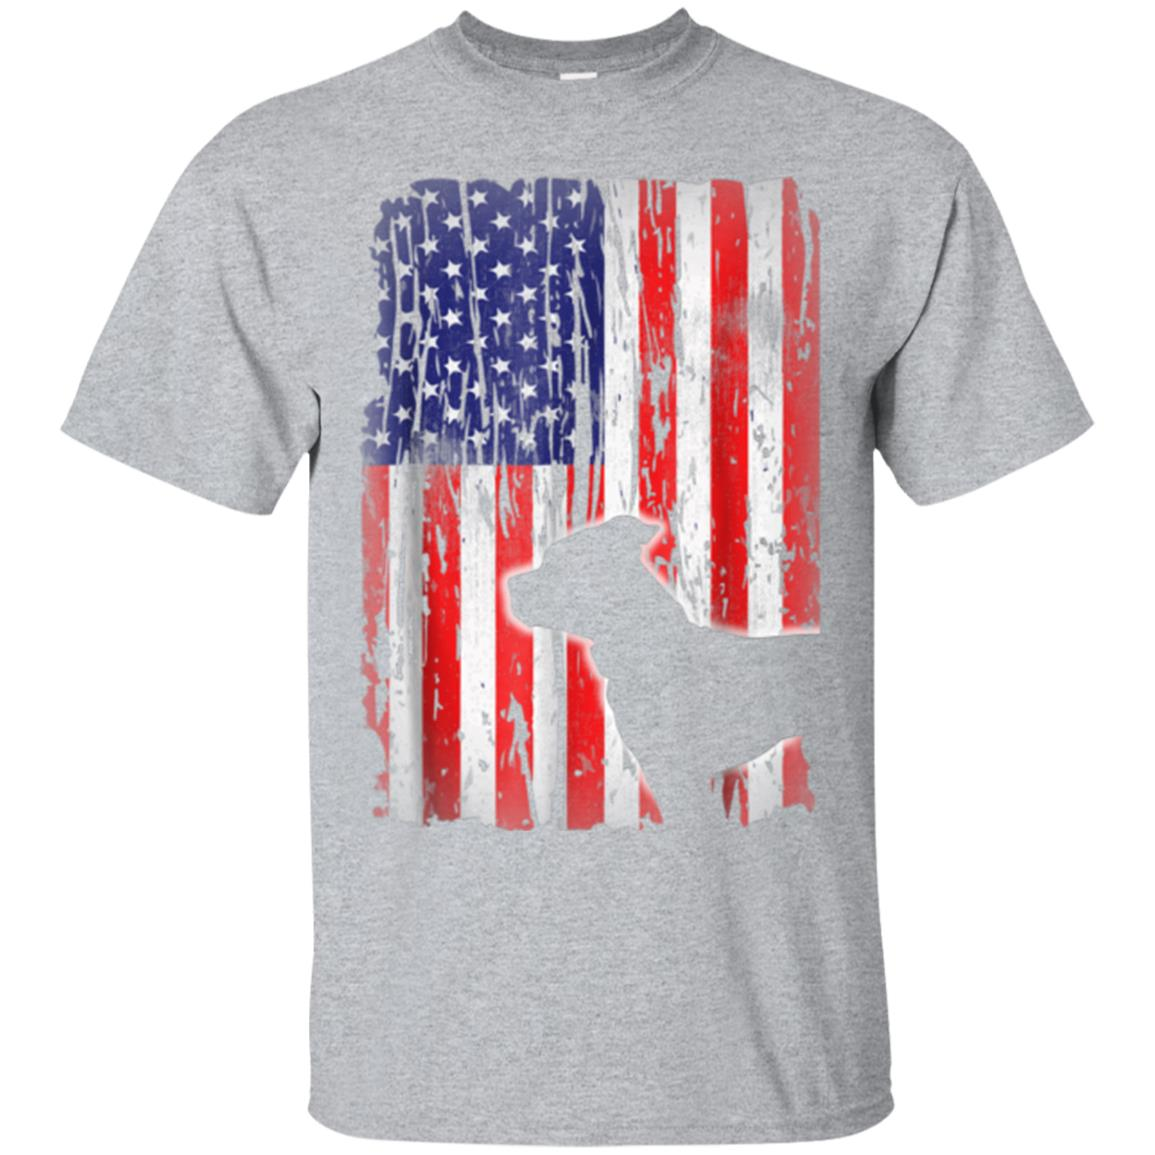 Pitbull terrier American Flag Shirt USA Patriotic Dog Gift 99promocode